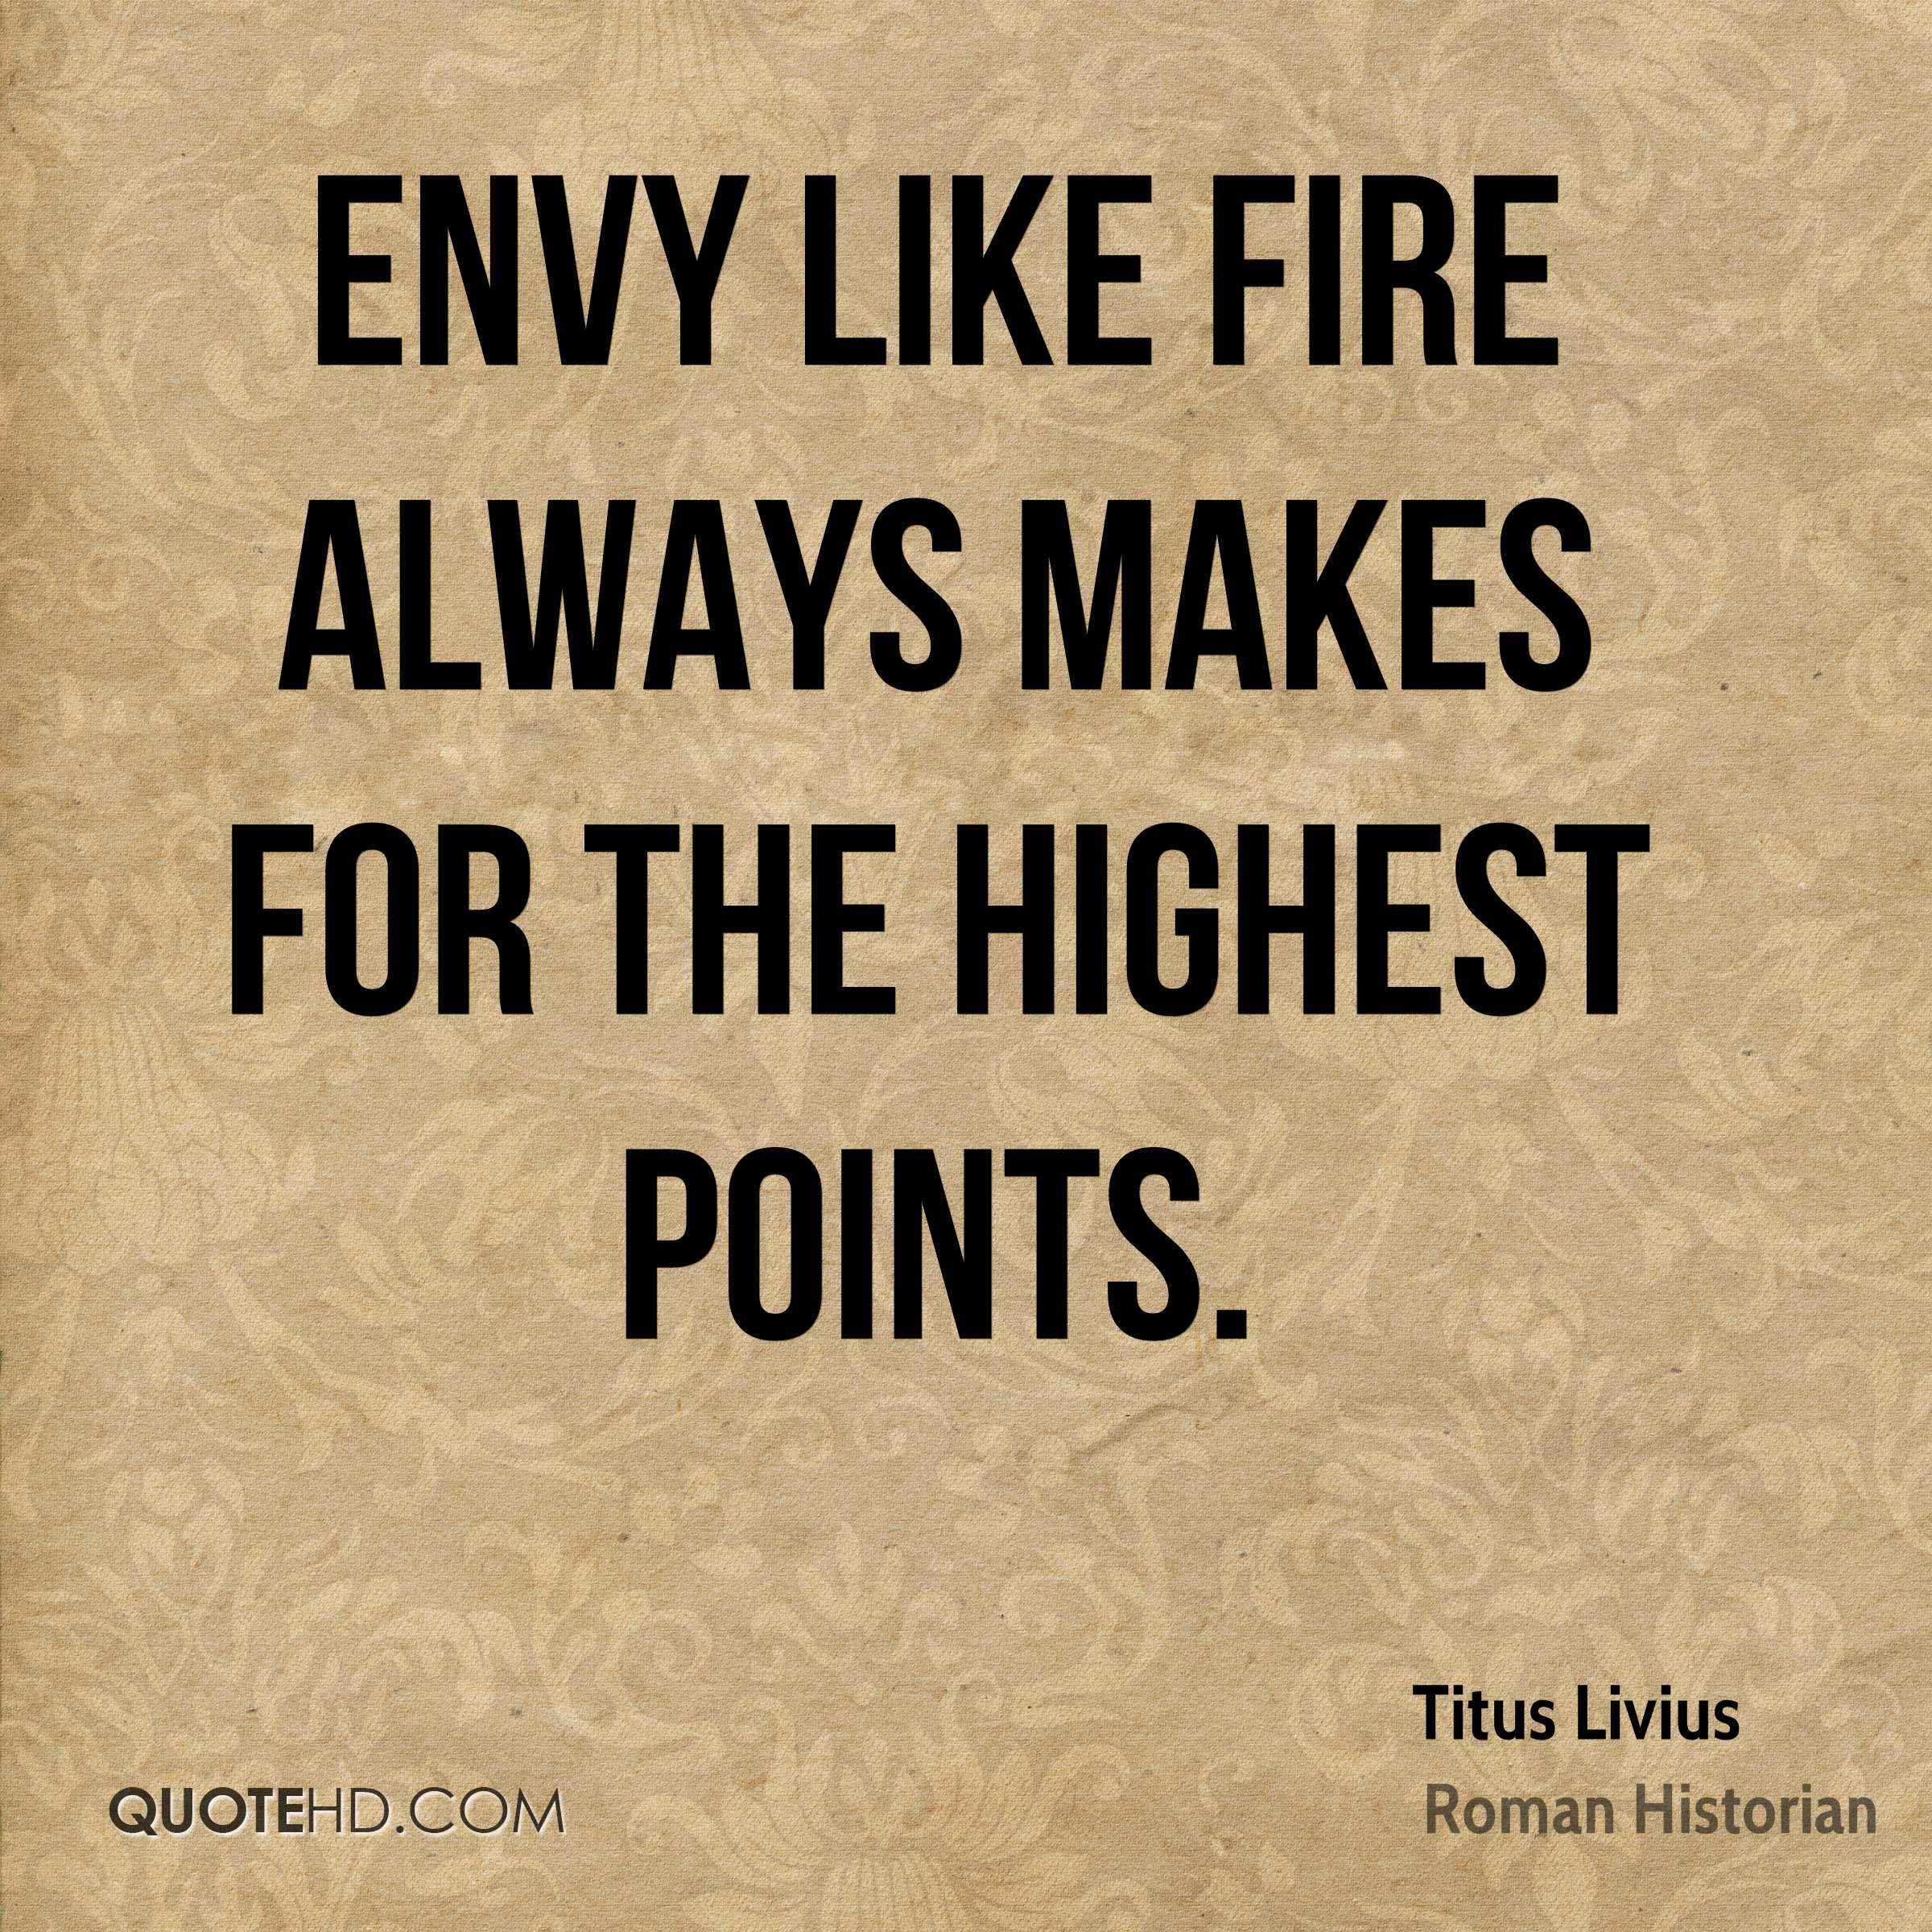 Envy like fire always makes for the highest points.